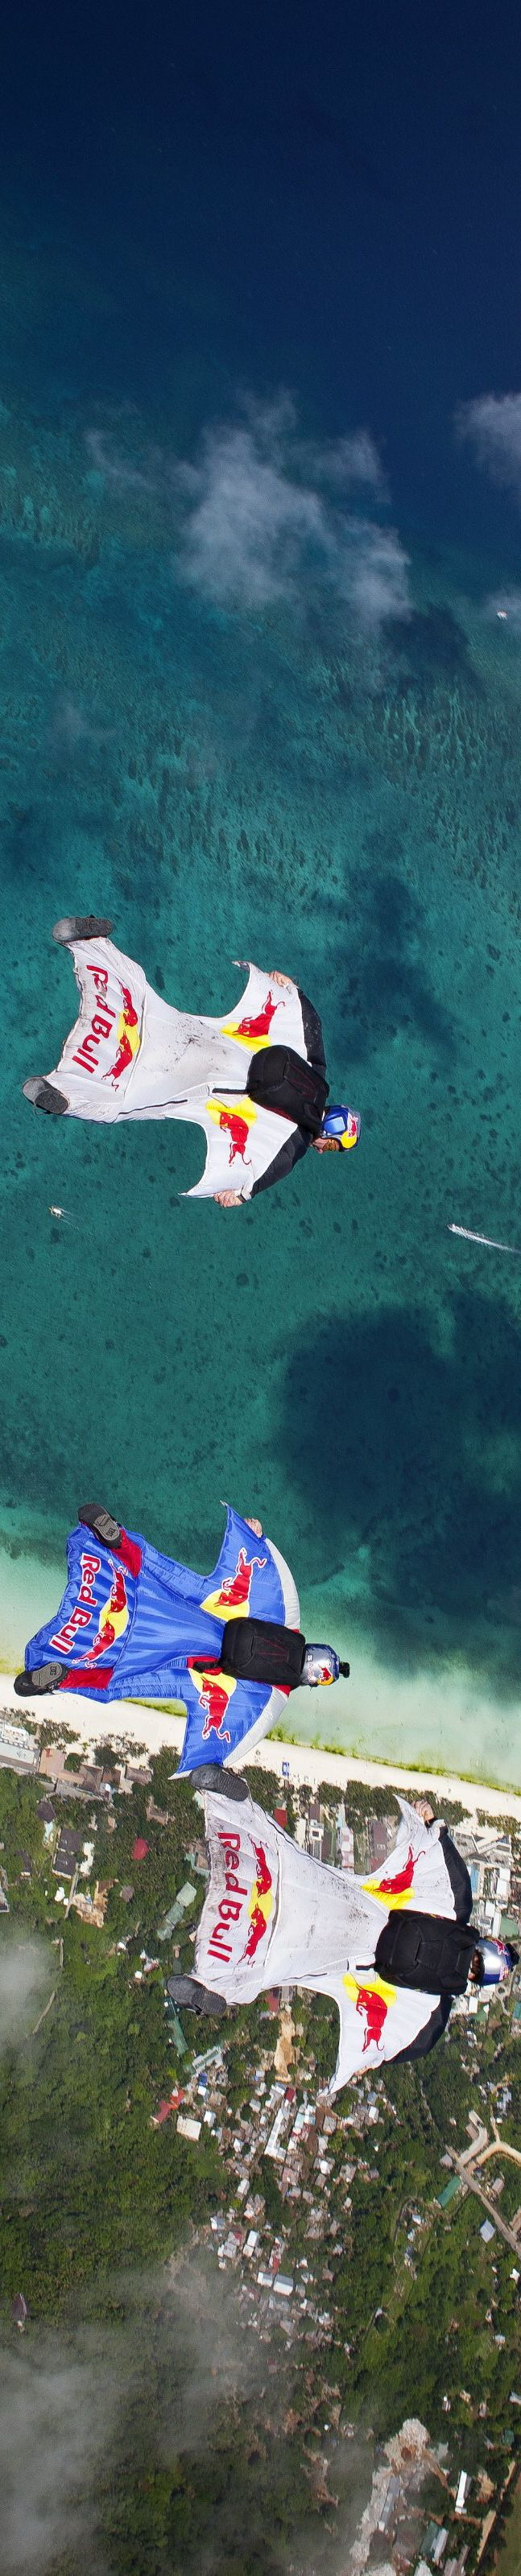 Suit up. #redbull #givesyouwings